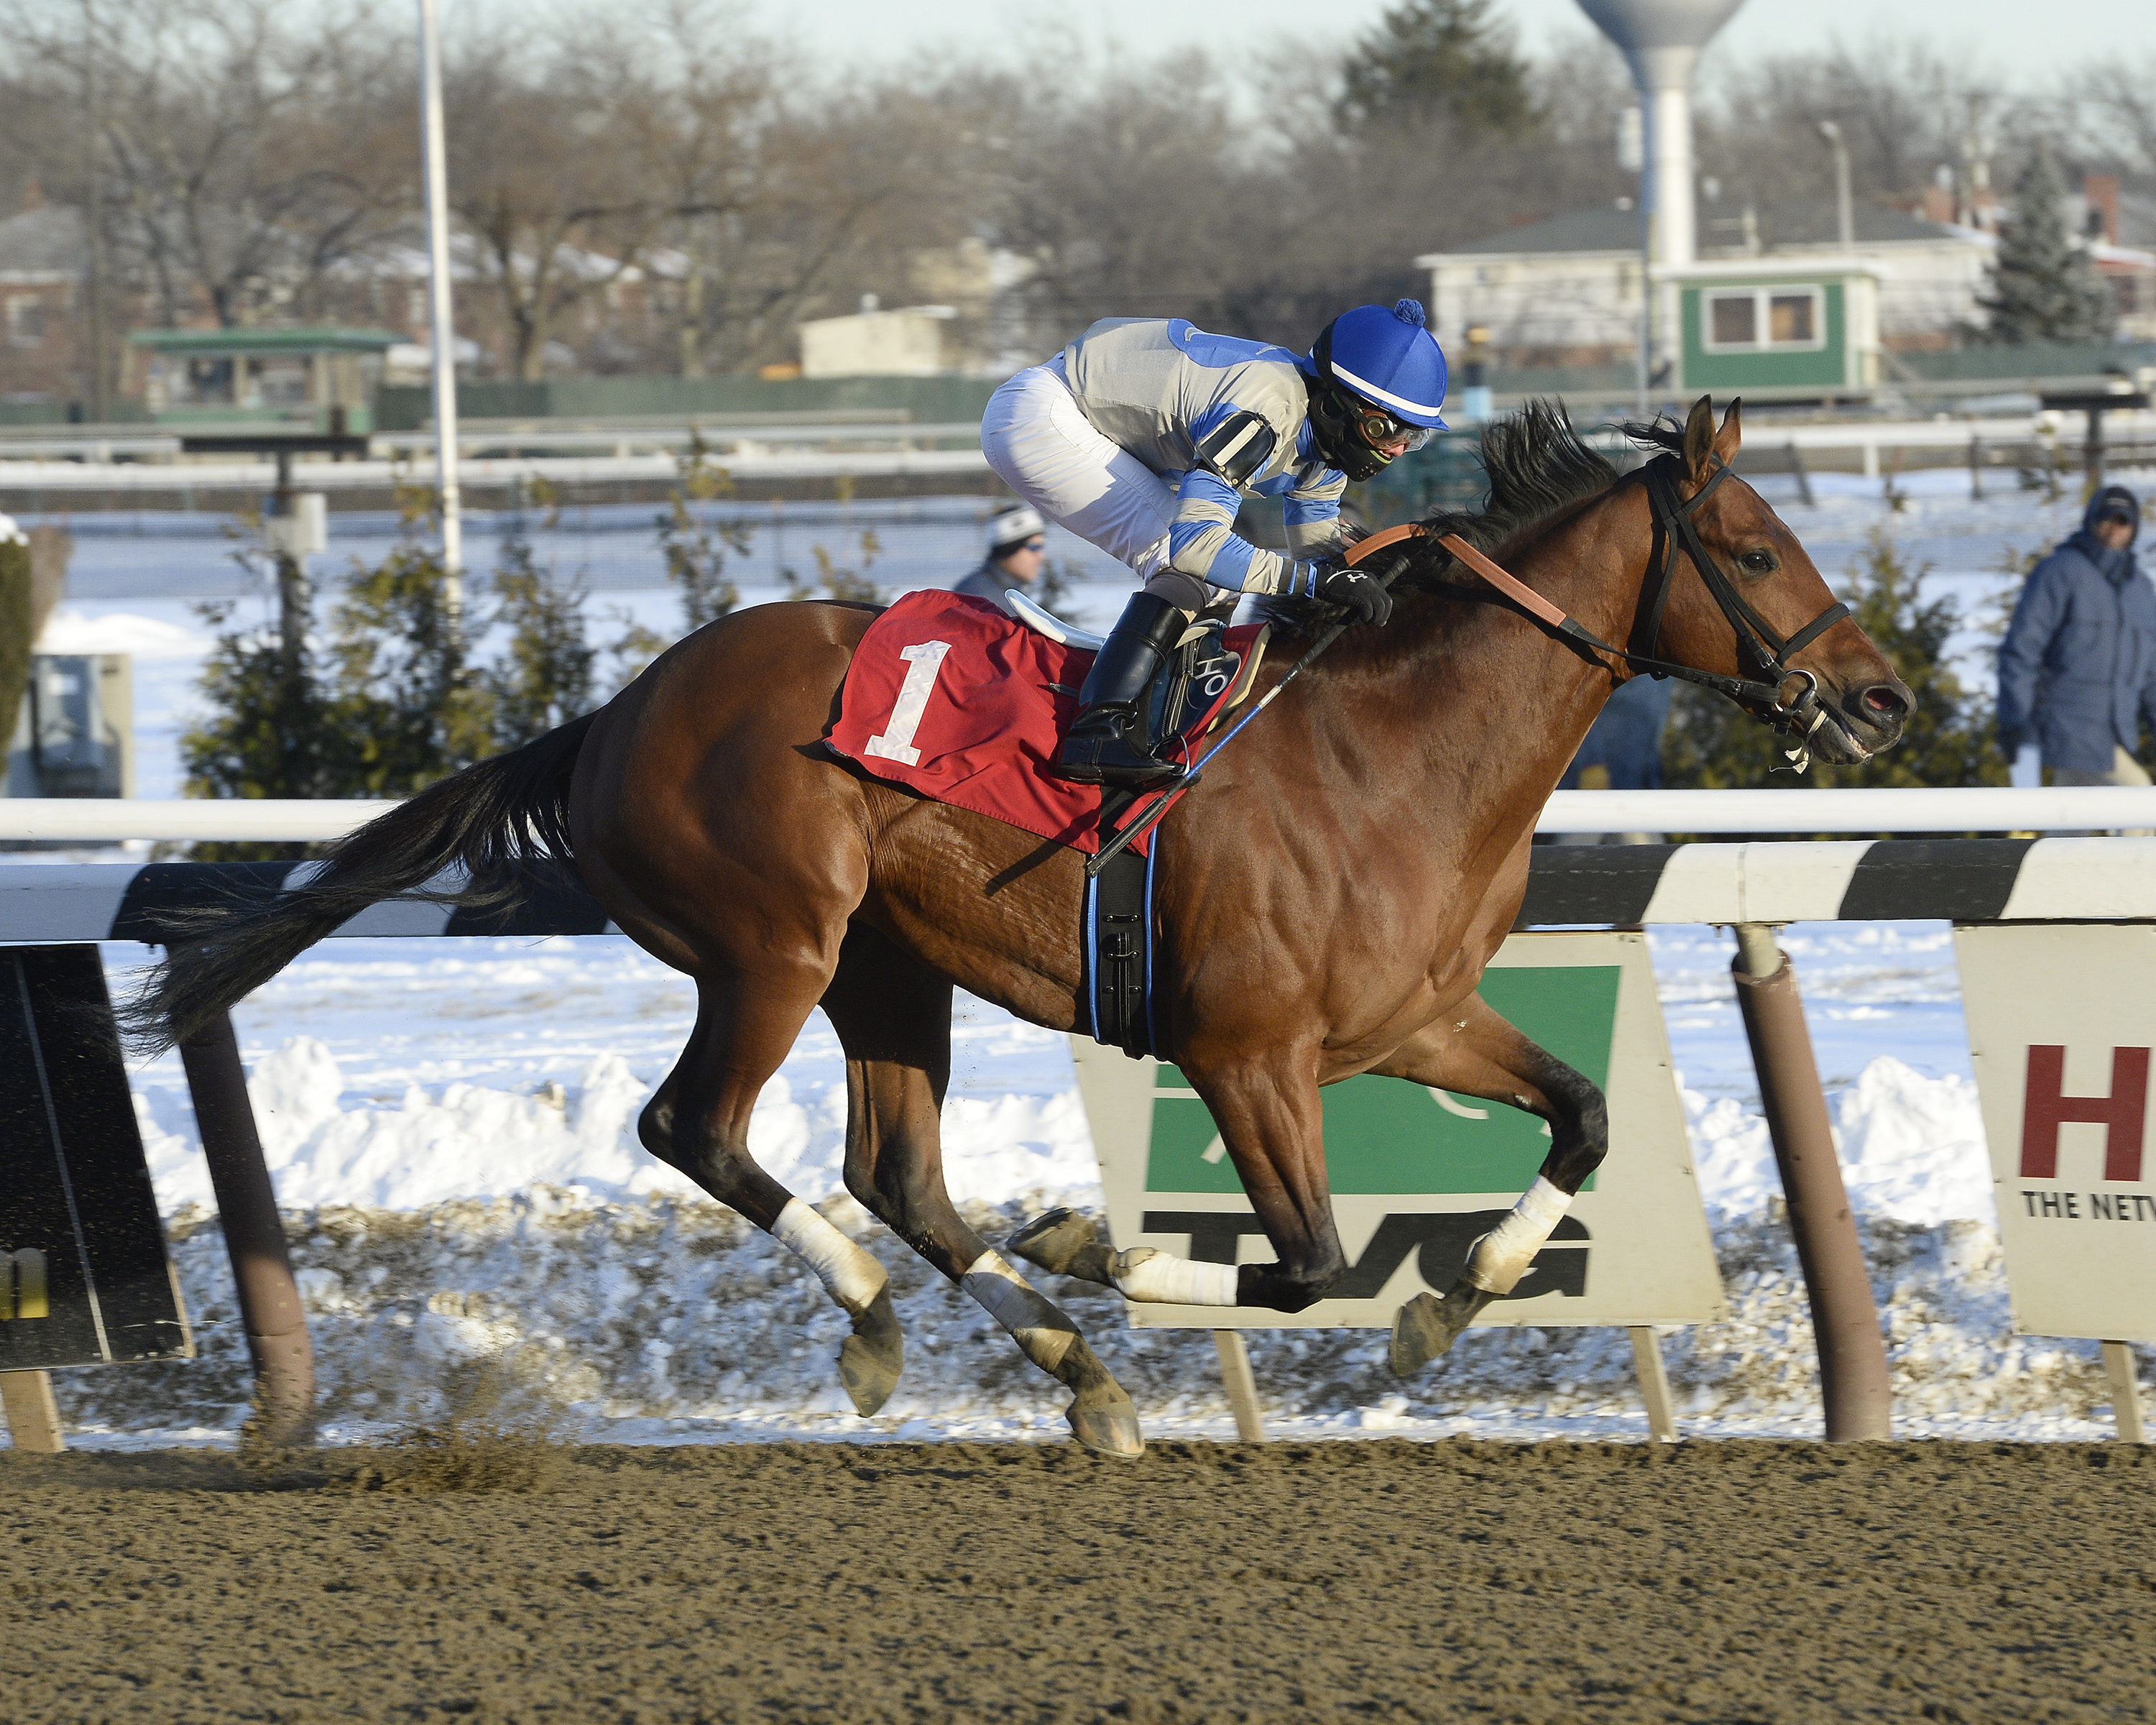 Ned Evans-bred Noble Moon dominated the Grade II Jerome on January 4, 2014. Photo Courtesy Adam Coglianese.